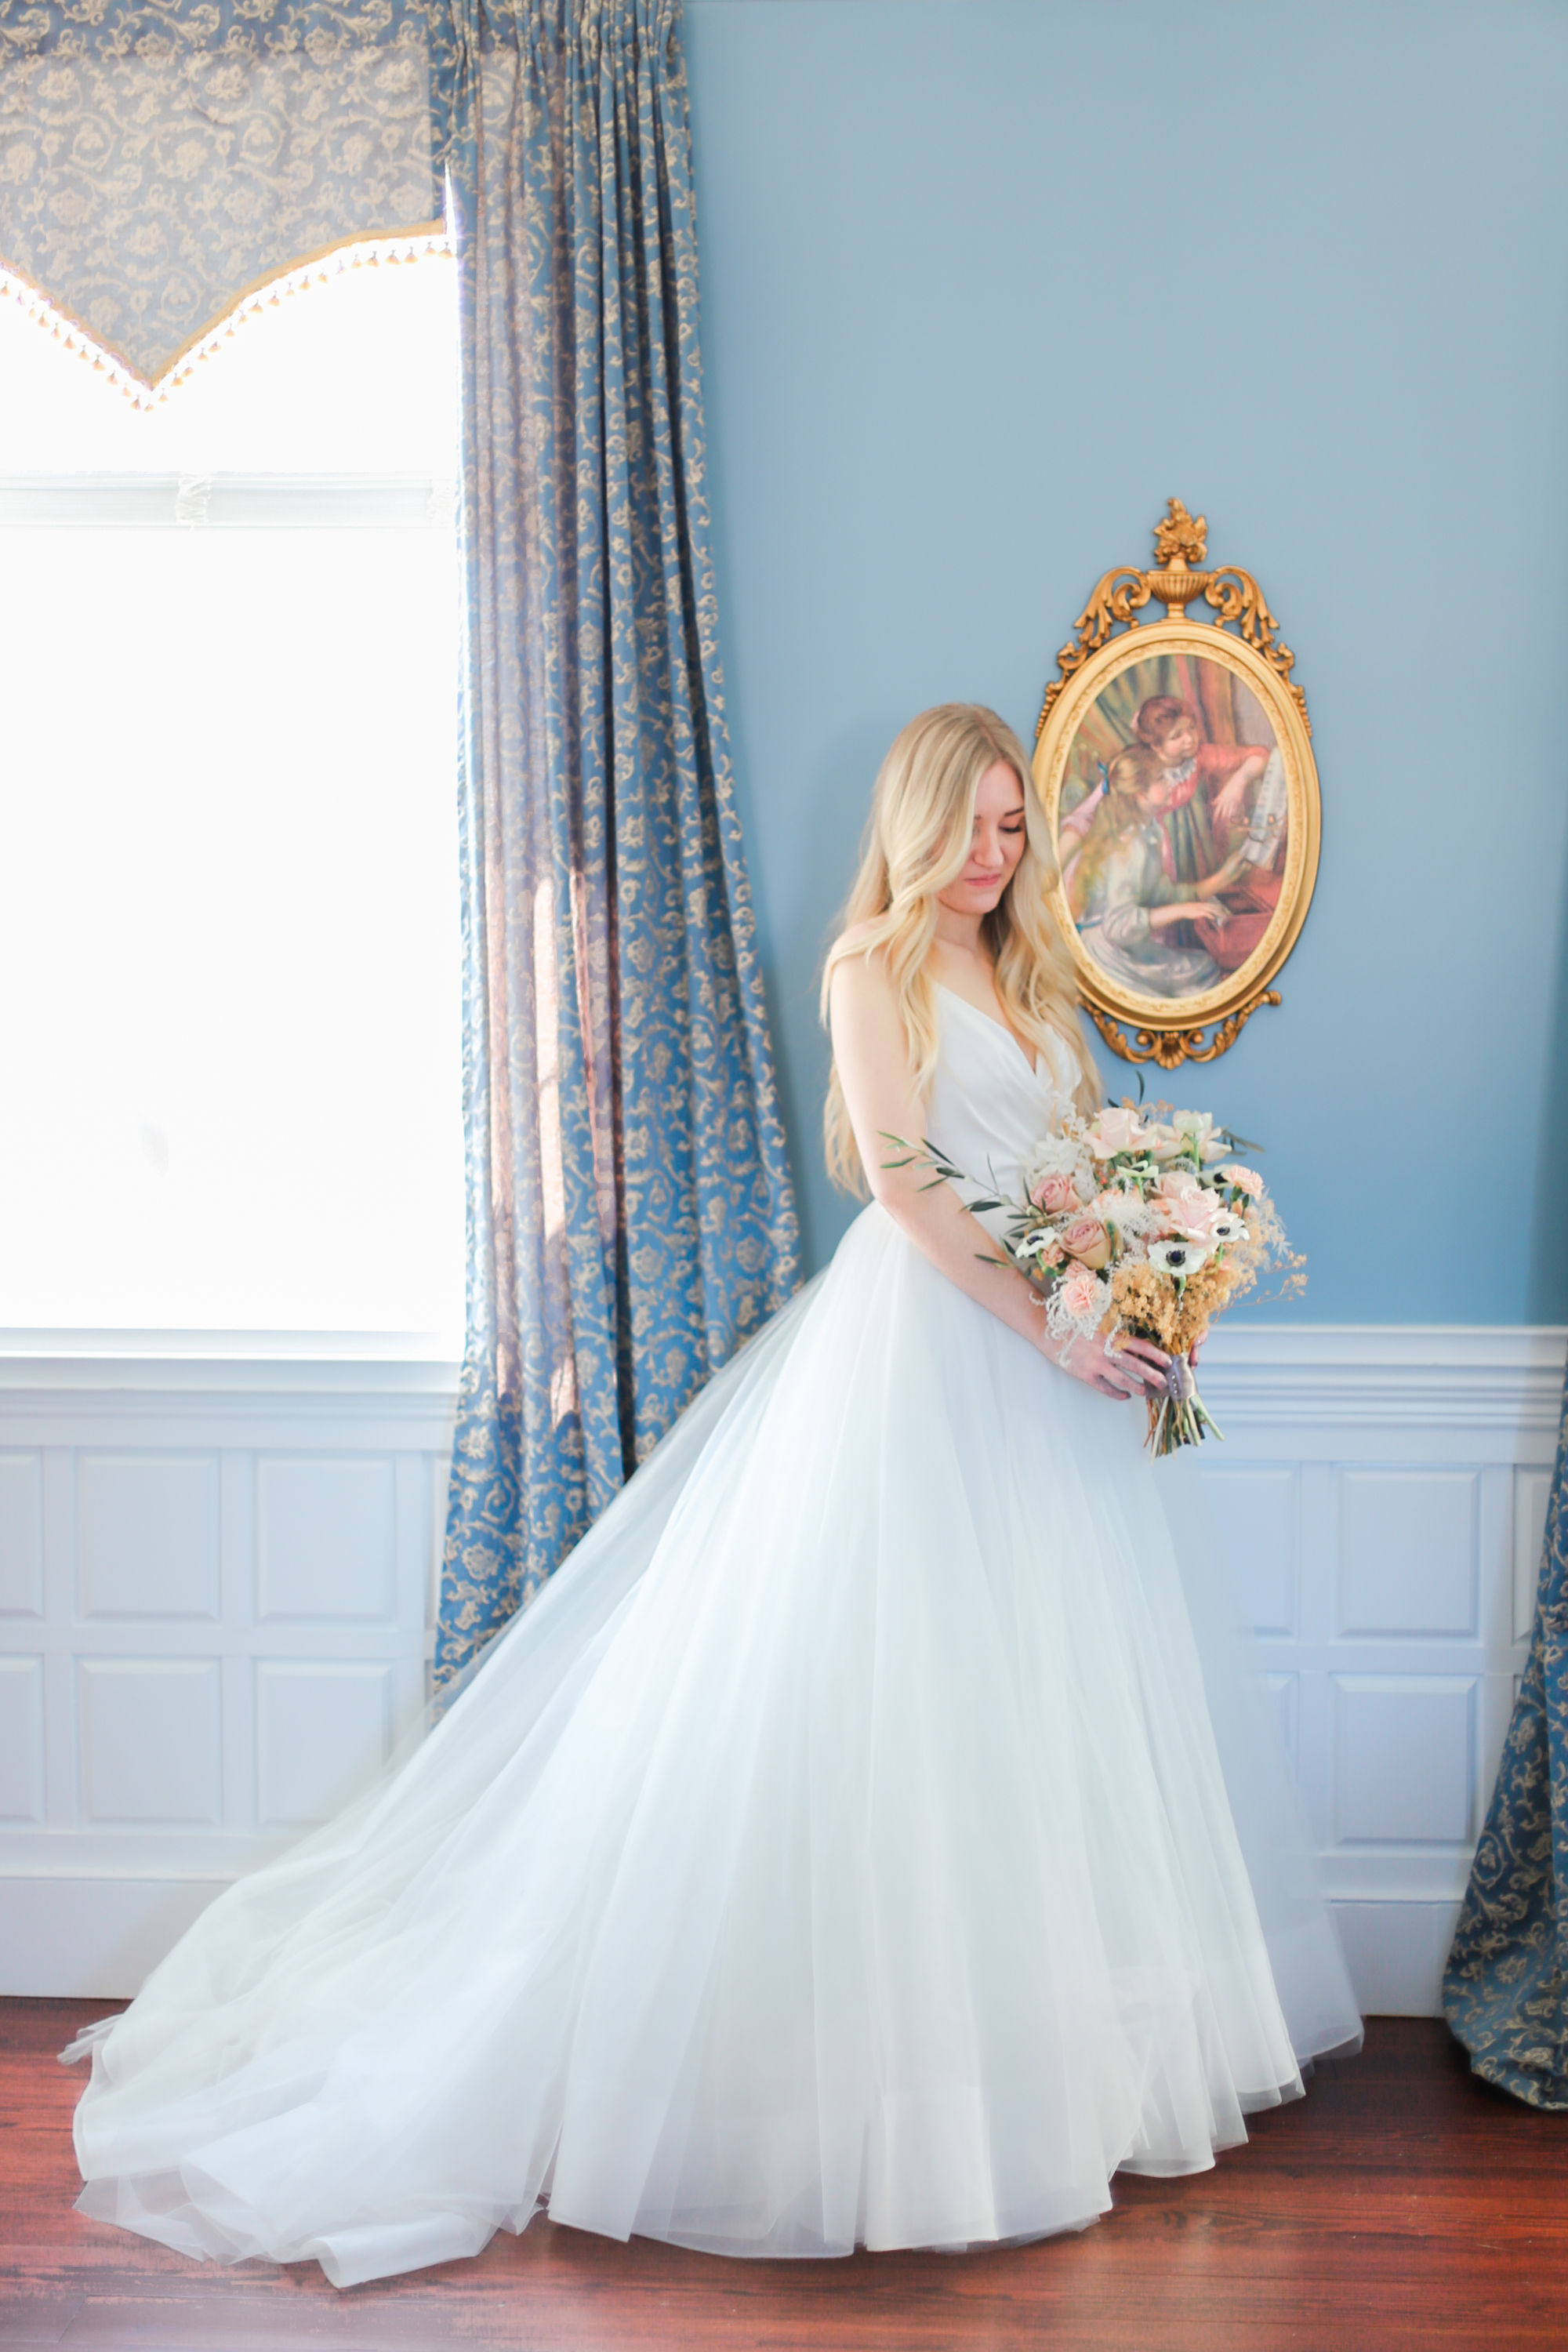 Better Than Cinderella - We all have secretly wanted to be a princess. And you have the right to feel and look like one on your wedding day! That is why we were inspired to create this Cinderella love story at Belle Garden Estate.Wirtz, Virginia